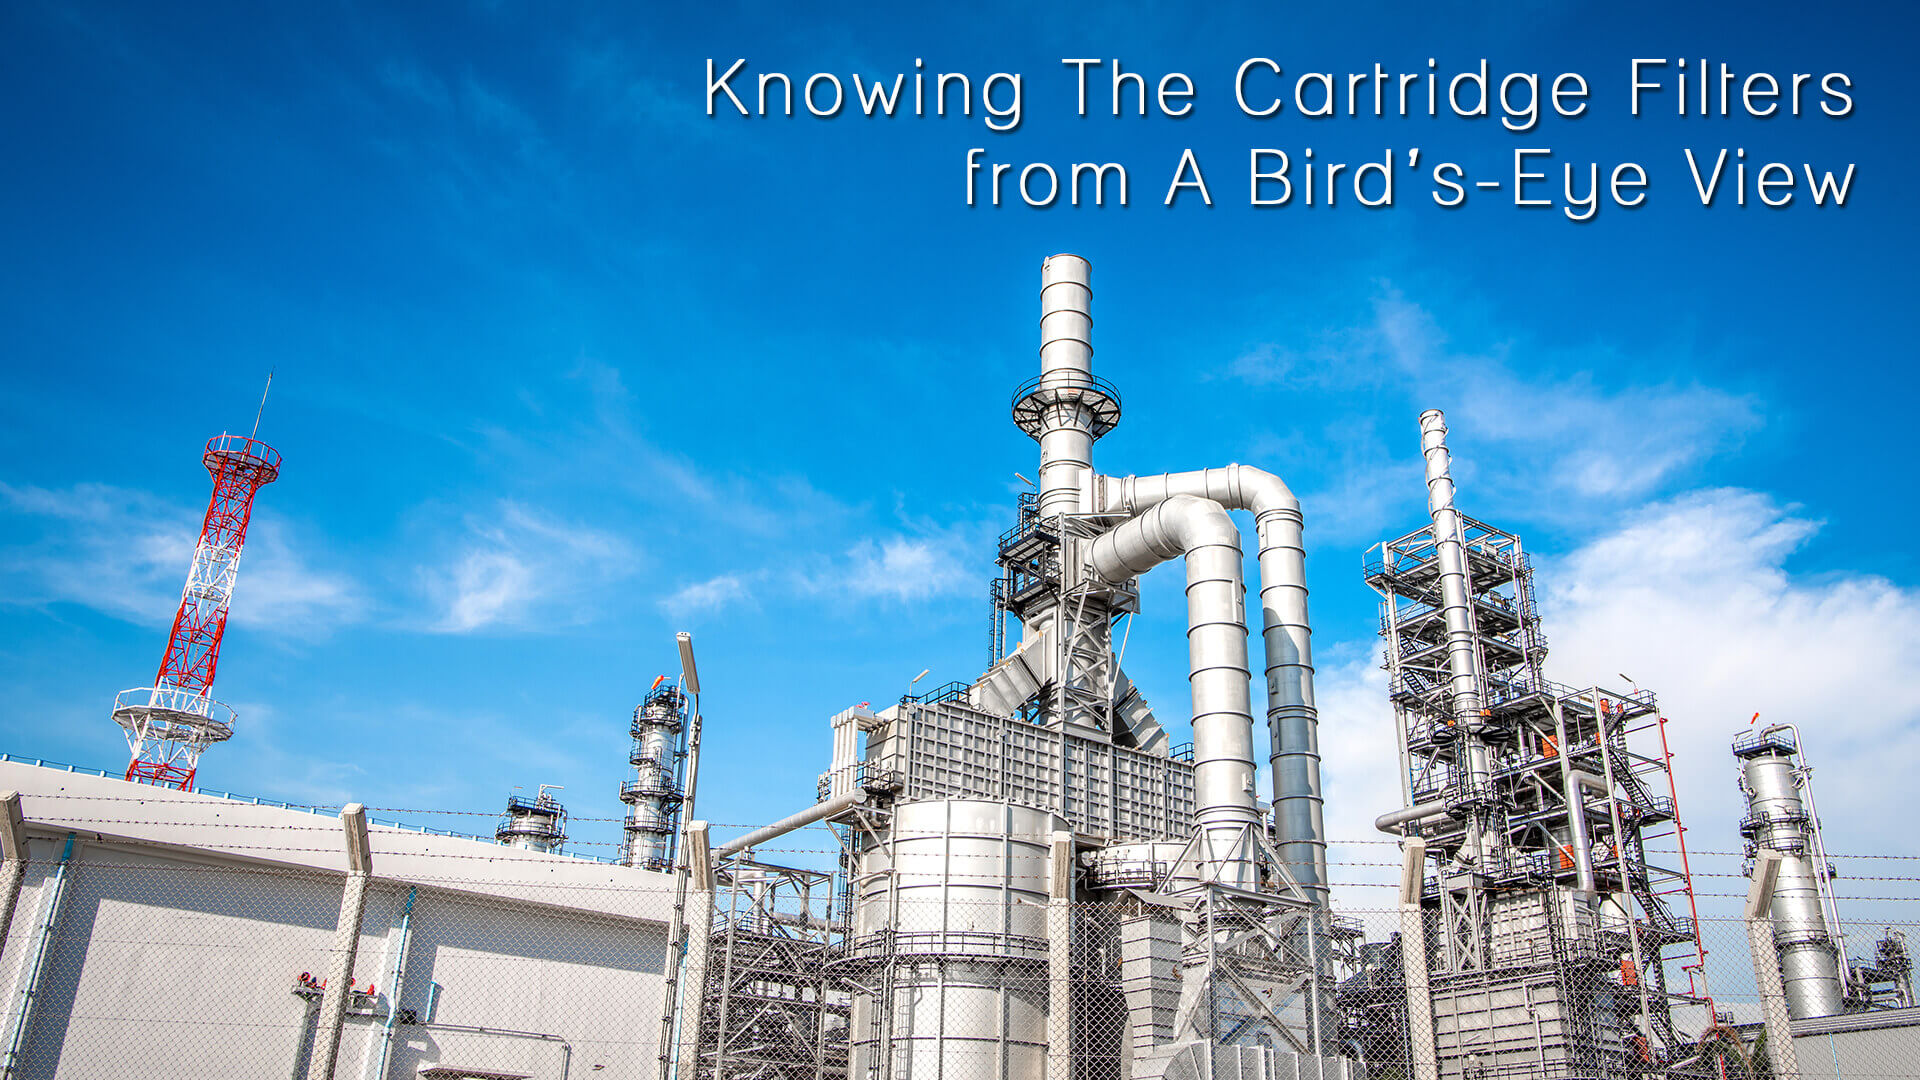 Knowing The Cartridge Filters From A Bird's-Eye View